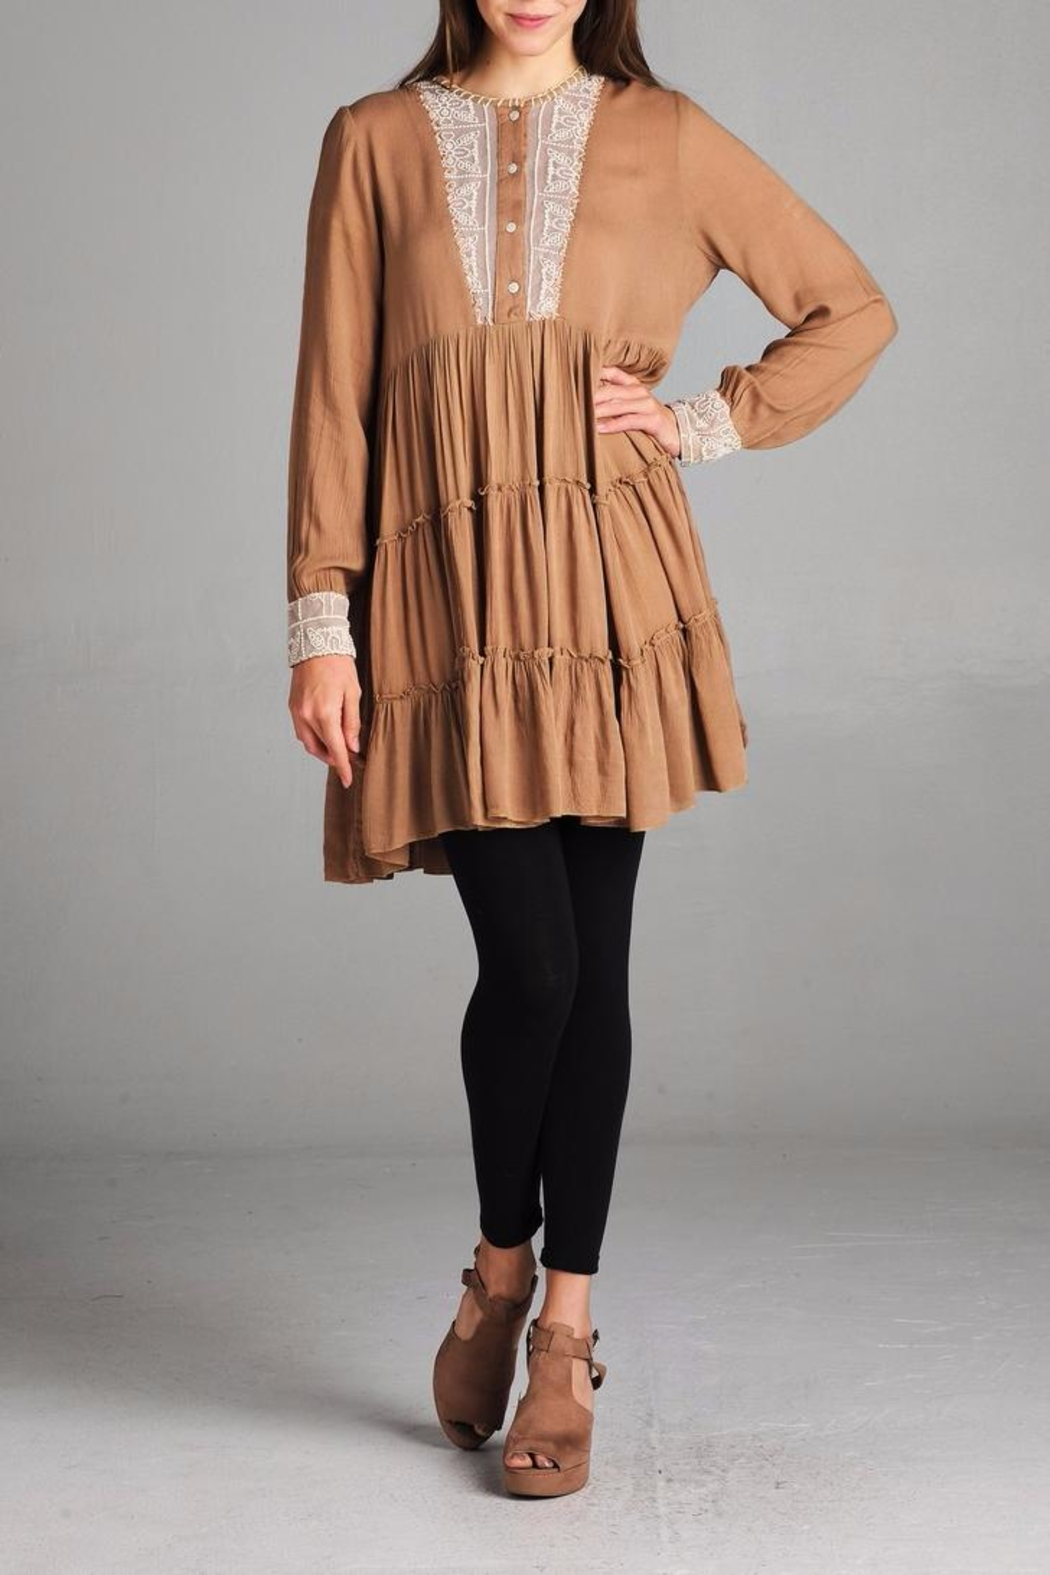 Velzera Taupe Embroidered Tunic Top - Main Image